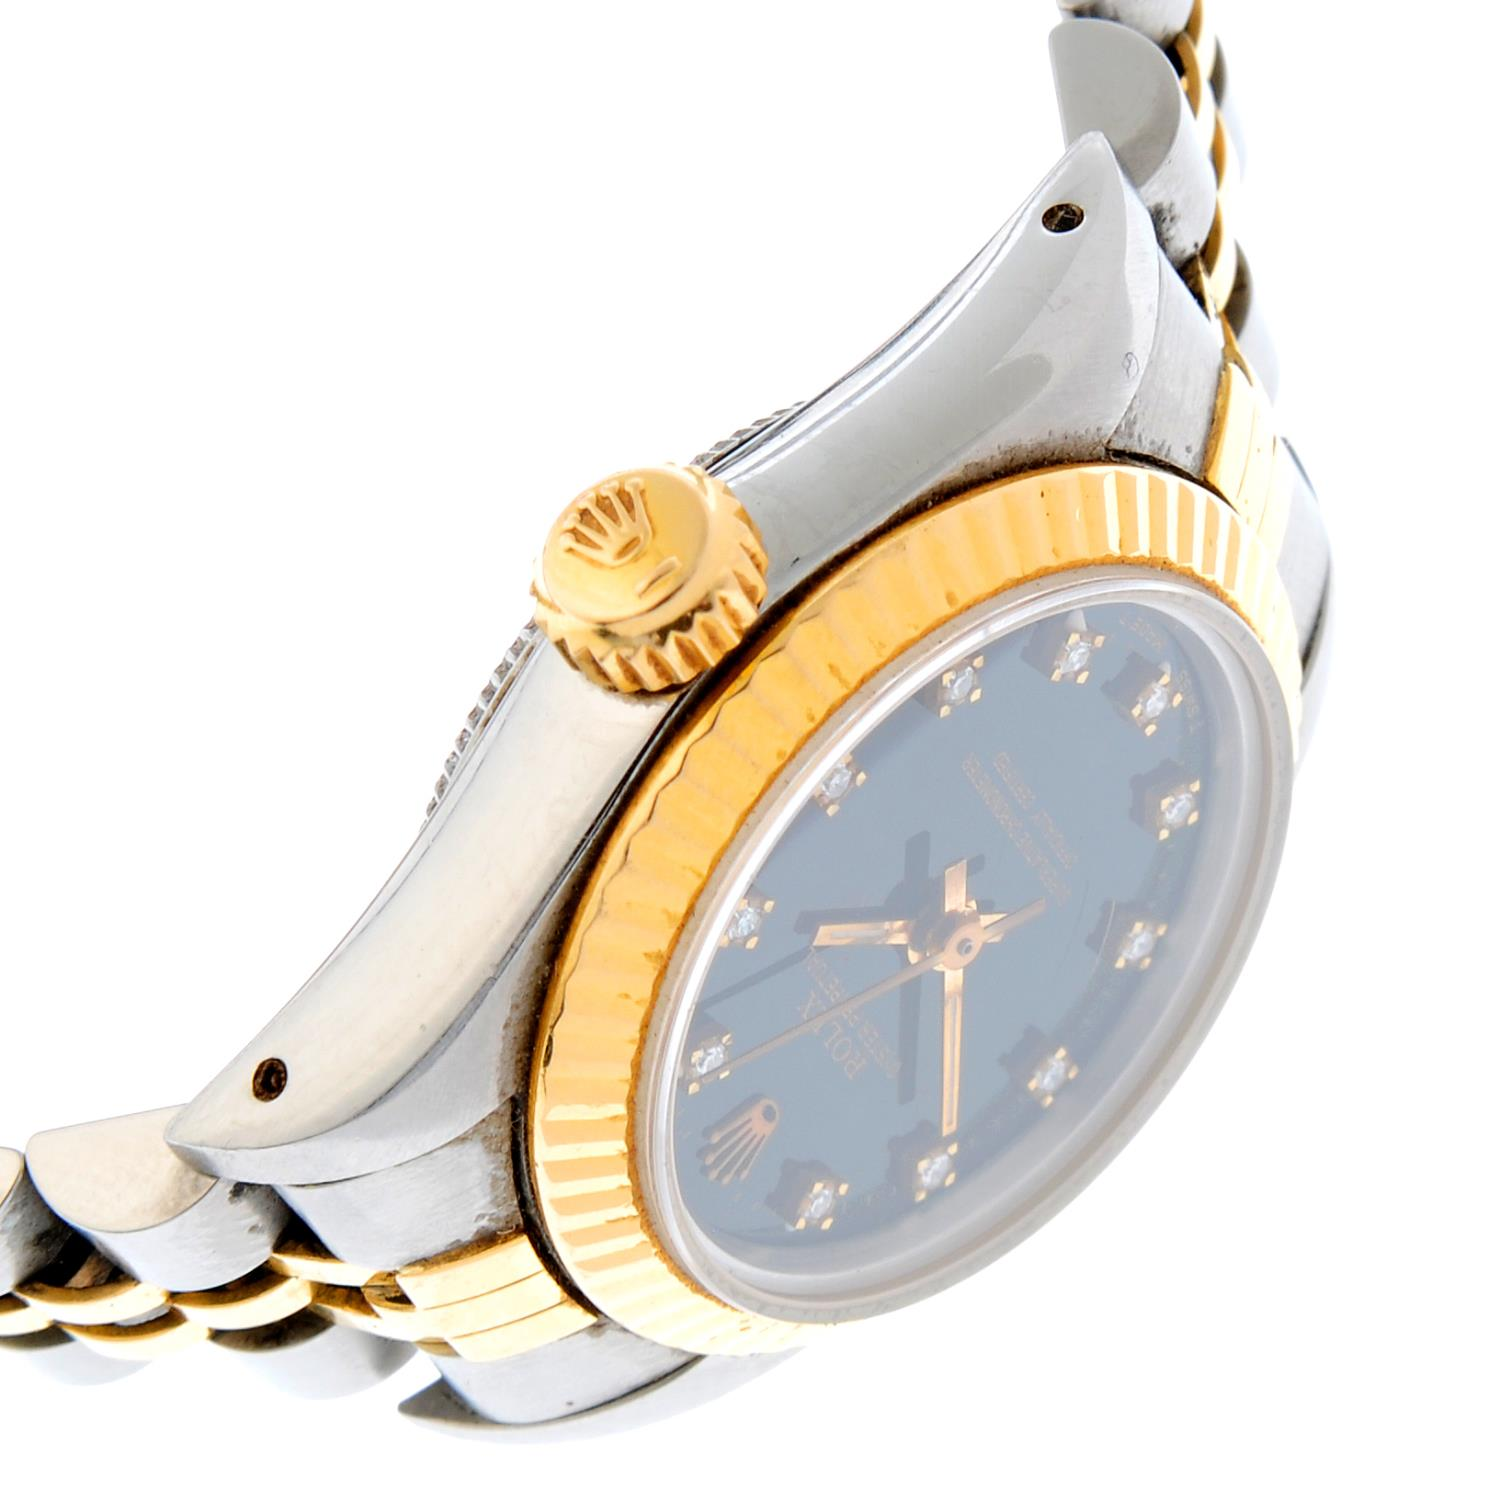 ROLEX - an Oyster Perpetual bracelet watch. - Image 3 of 4